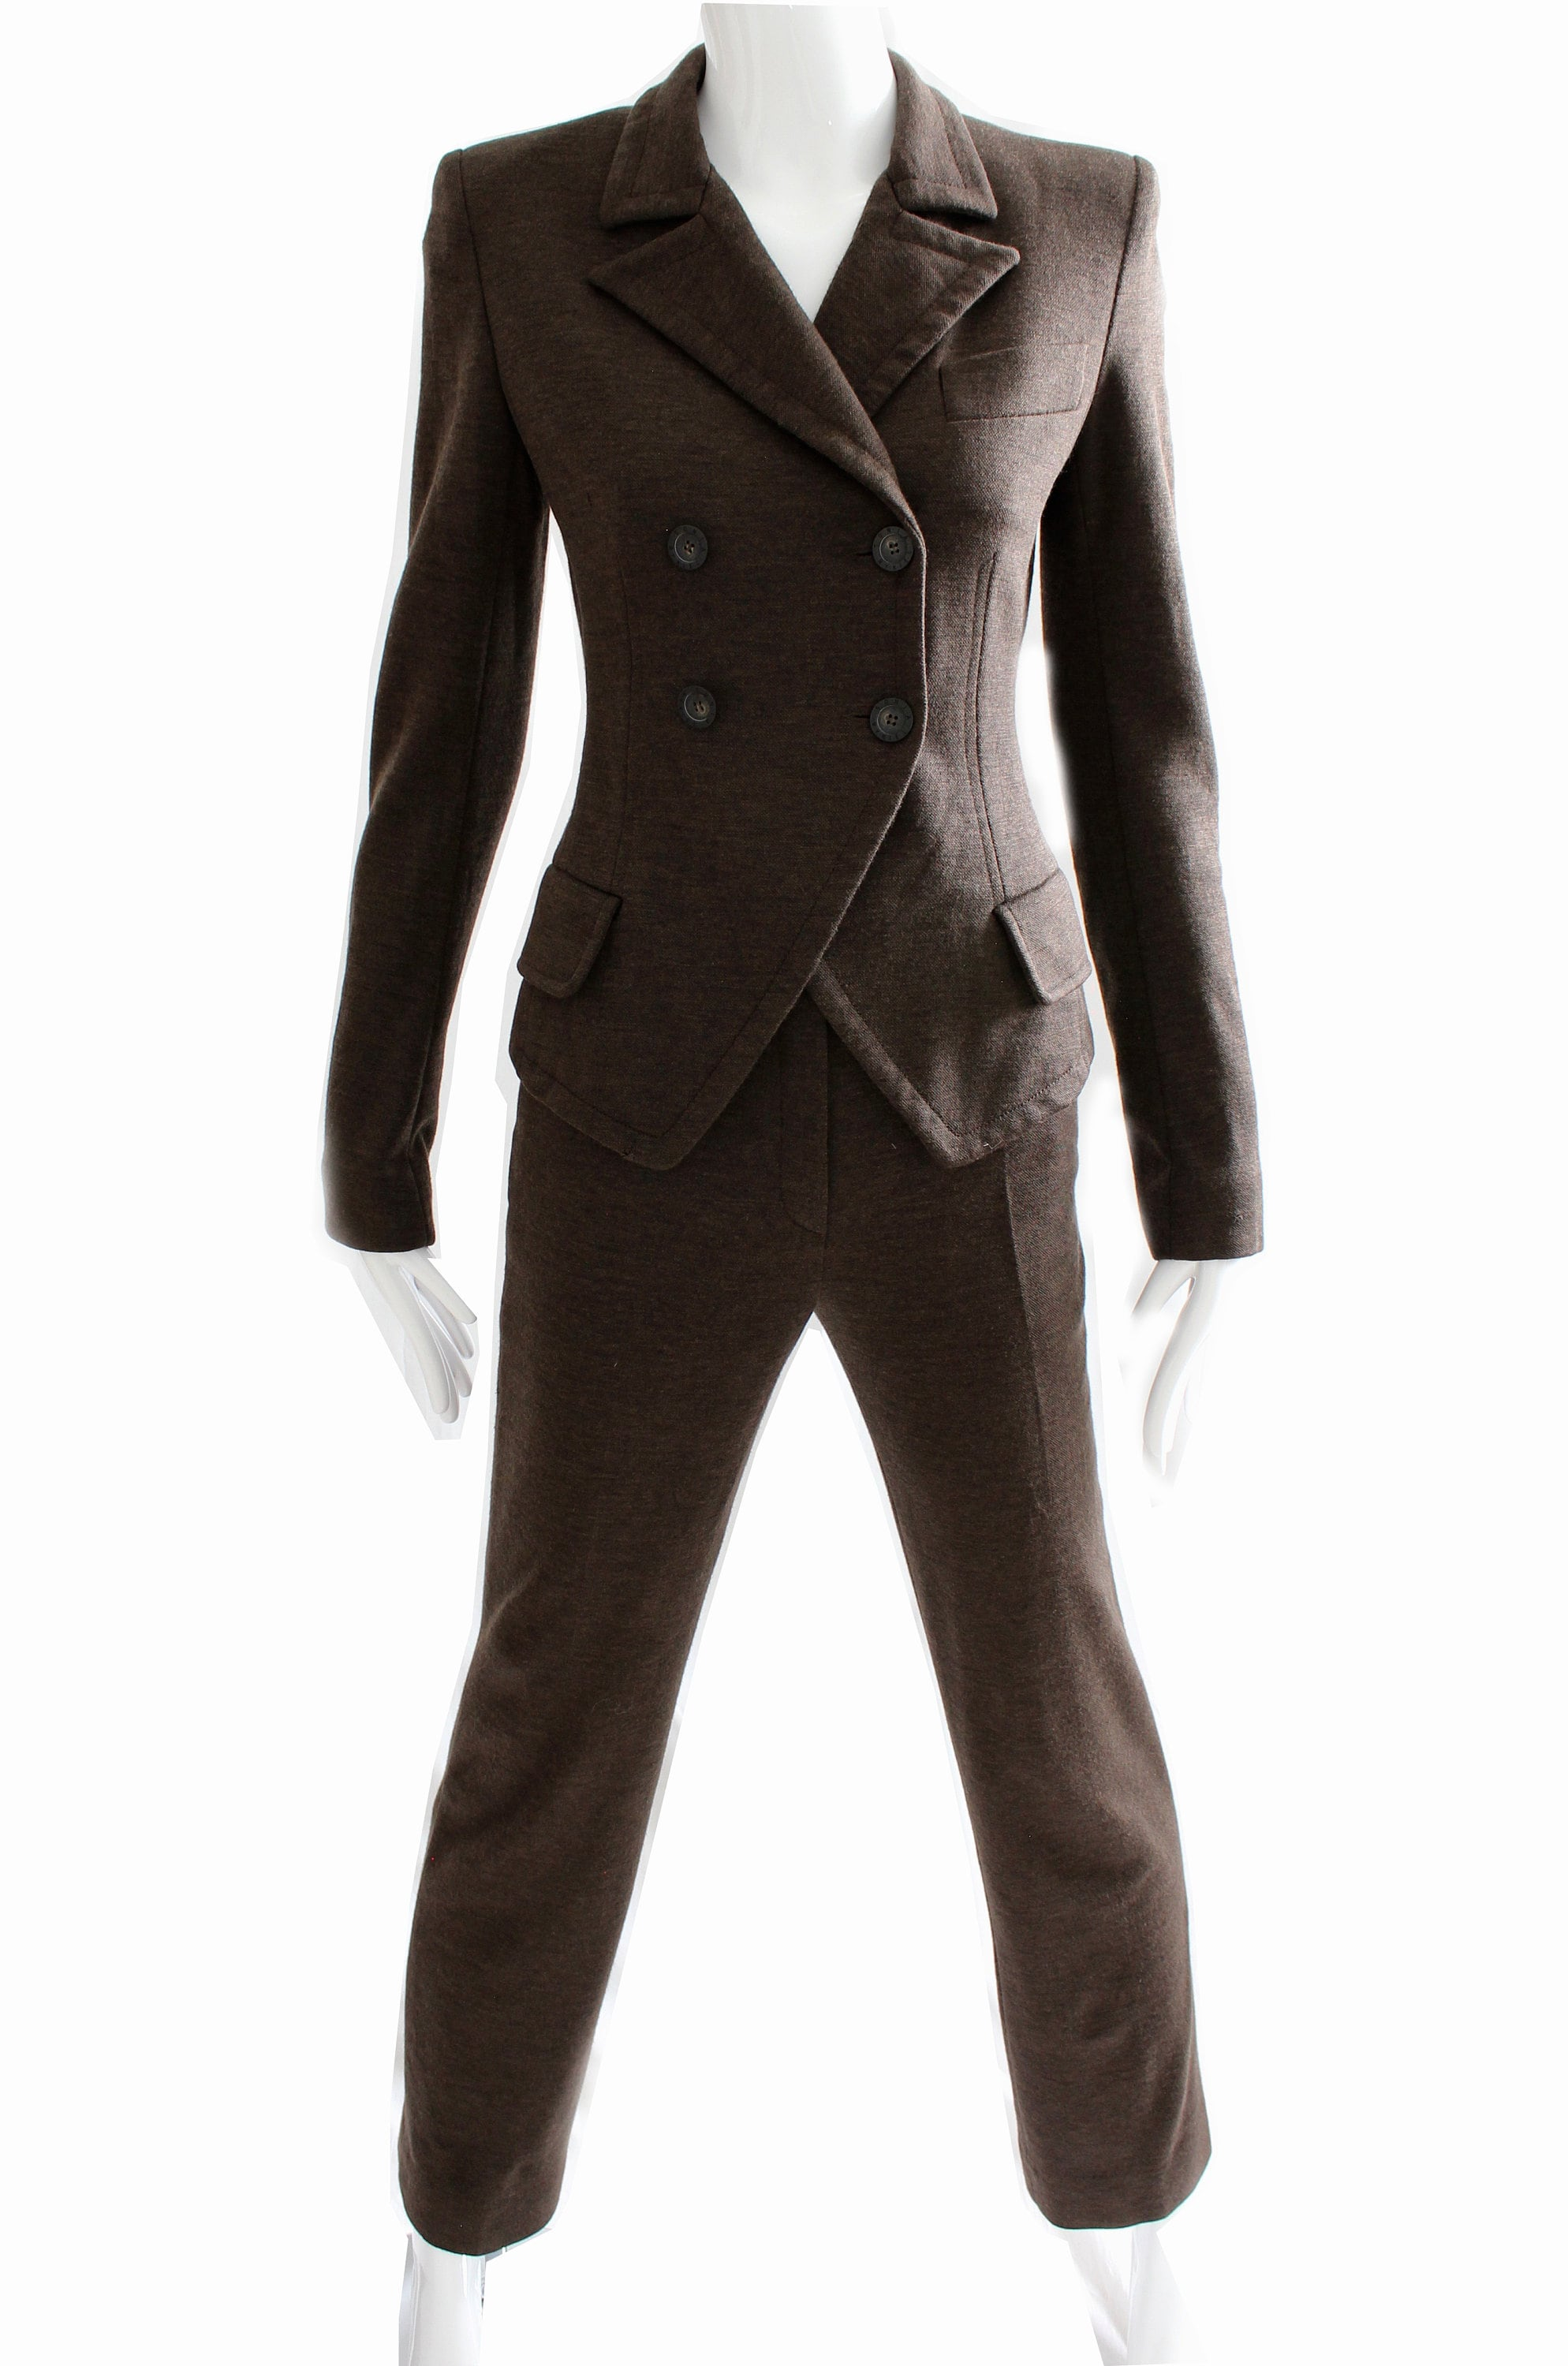 1531446c79 Sonia Rykiel Brown Knit Pantsuit 2pc Numbered Haute Couture Sz | Etsy